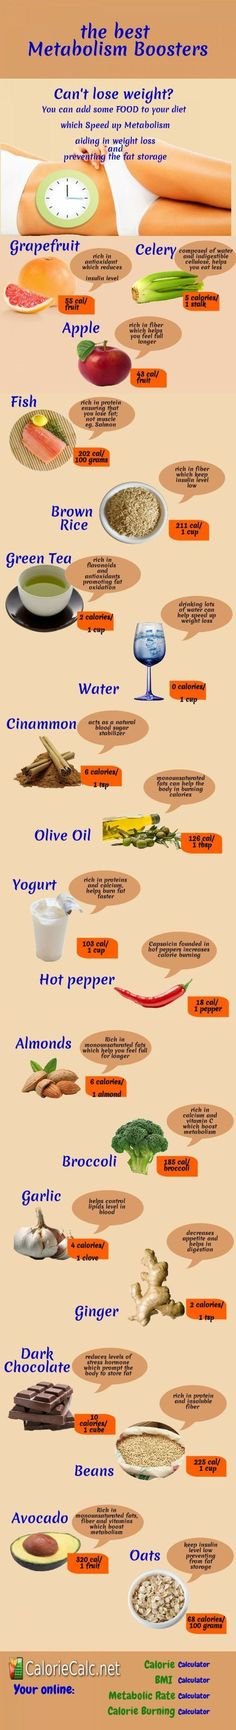 Some food can boost metabolism prevent the fat storage and help you lose or maintain weight.: Diet Metabolism Boosters Weight Loss Increase Metabolism Metabolism Boosting Foods Weightloss Healthy Food Weights Loss Metabolism Infographics by Muna. Best Metabolism Booster, Foods That Increase Metabolism, Metabolism Boosting Foods, Metabolism Supplements, Healthy Tips, Healthy Choices, Healthy Weight, Healthy Foods, Healthy Habits